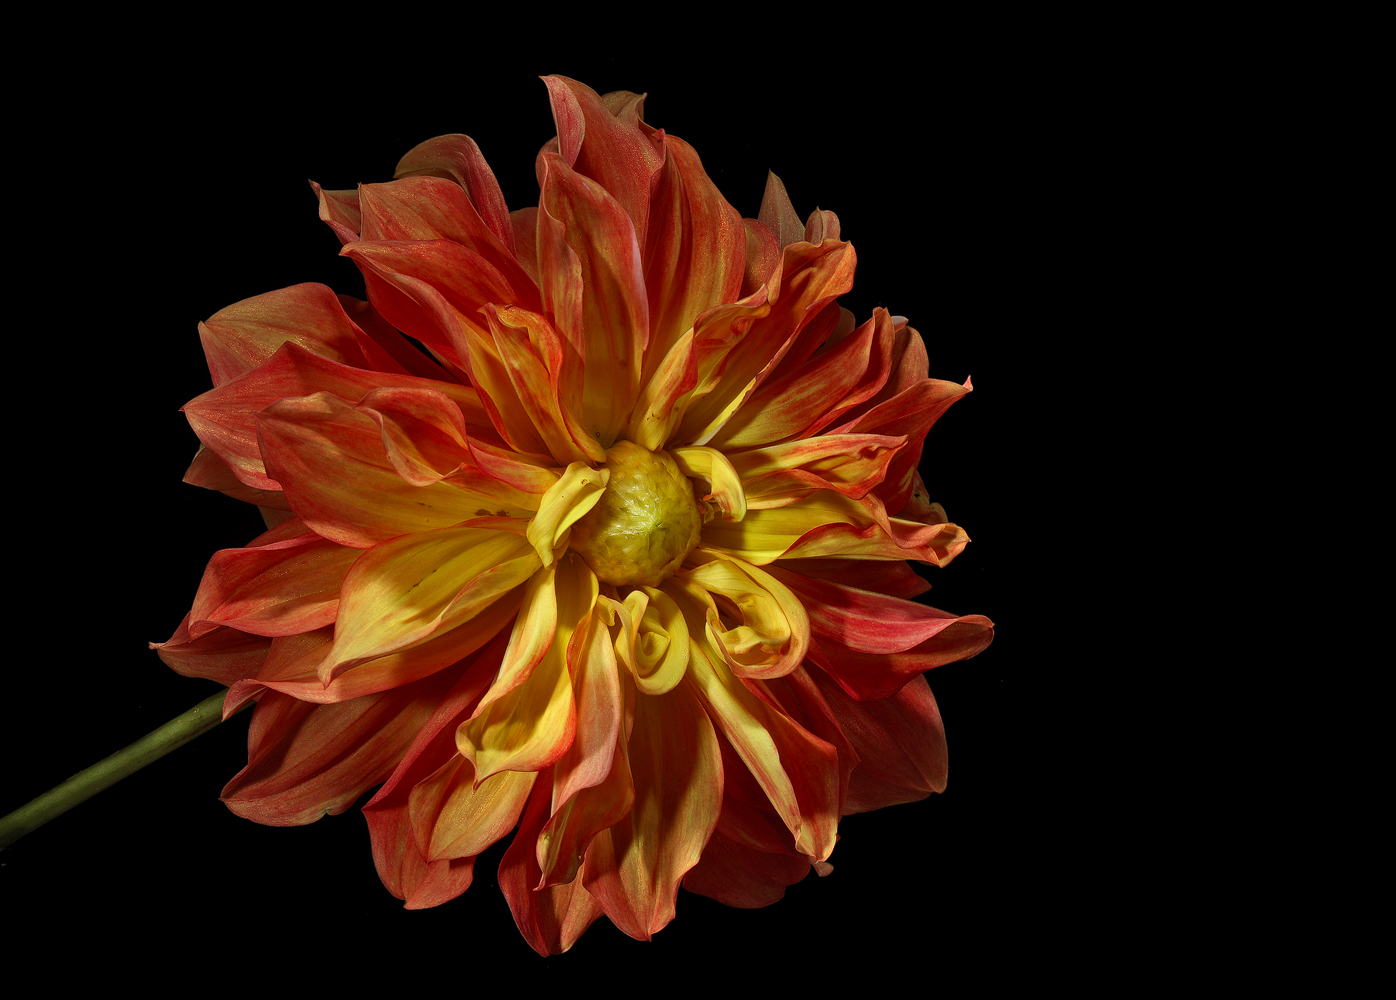 multi flavored dahlia img aw author sava gregory and verena